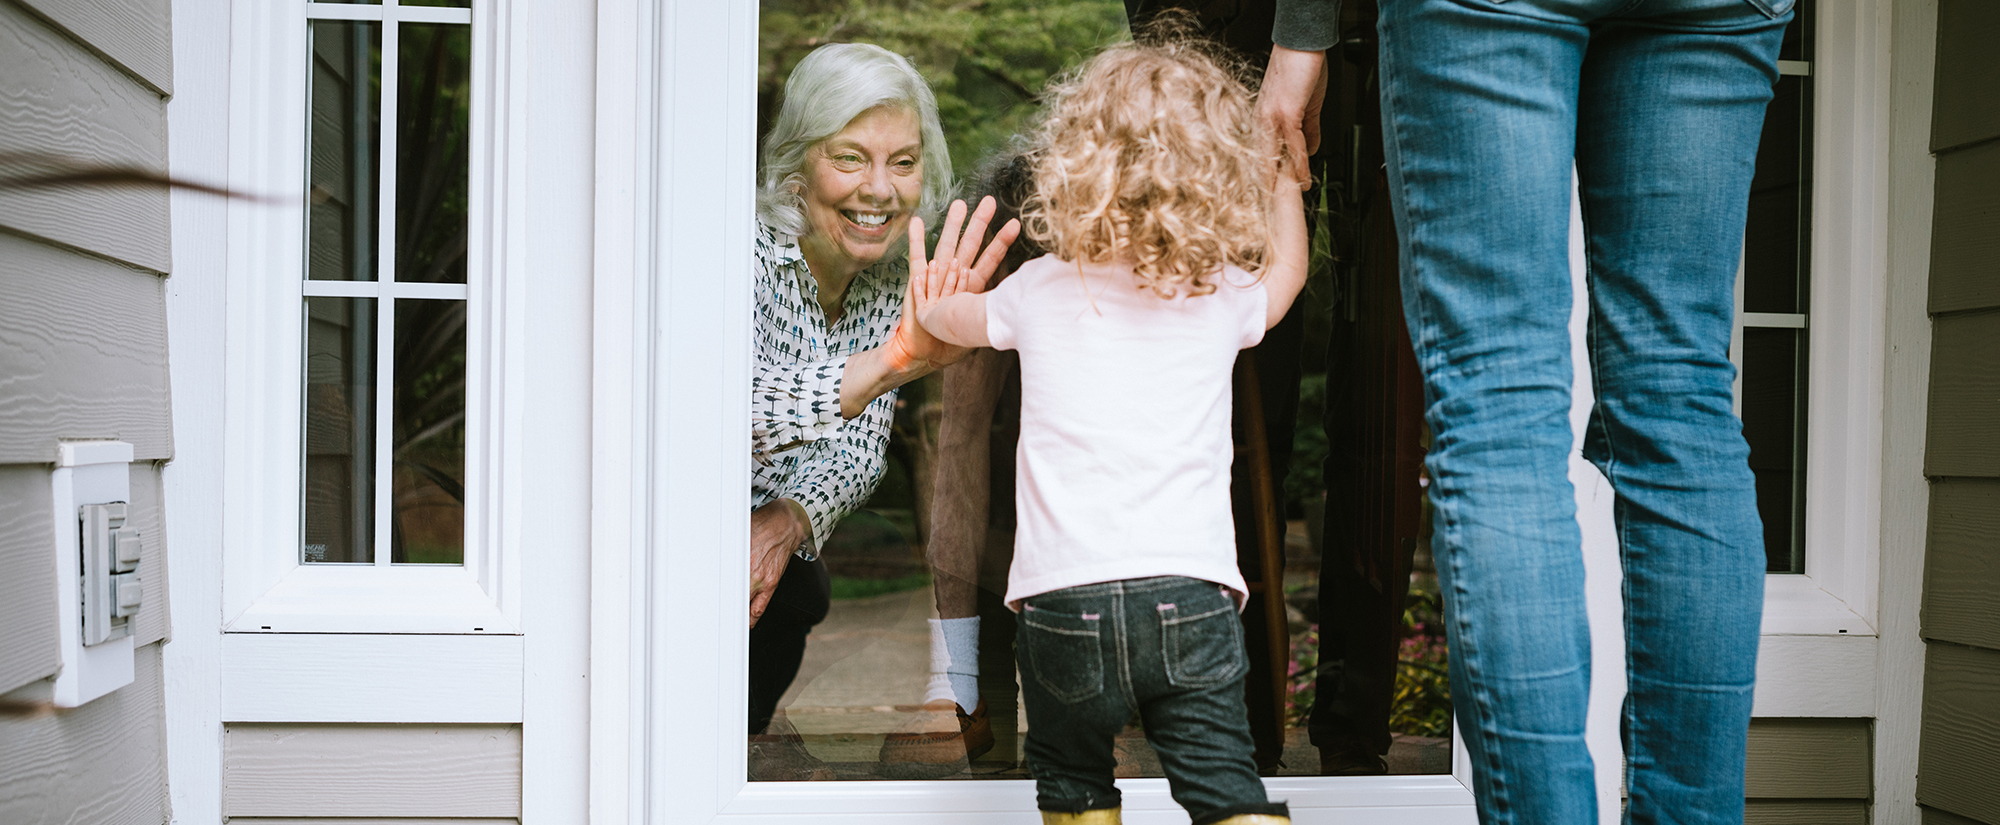 grandmother-seeing-child-through-glass-door